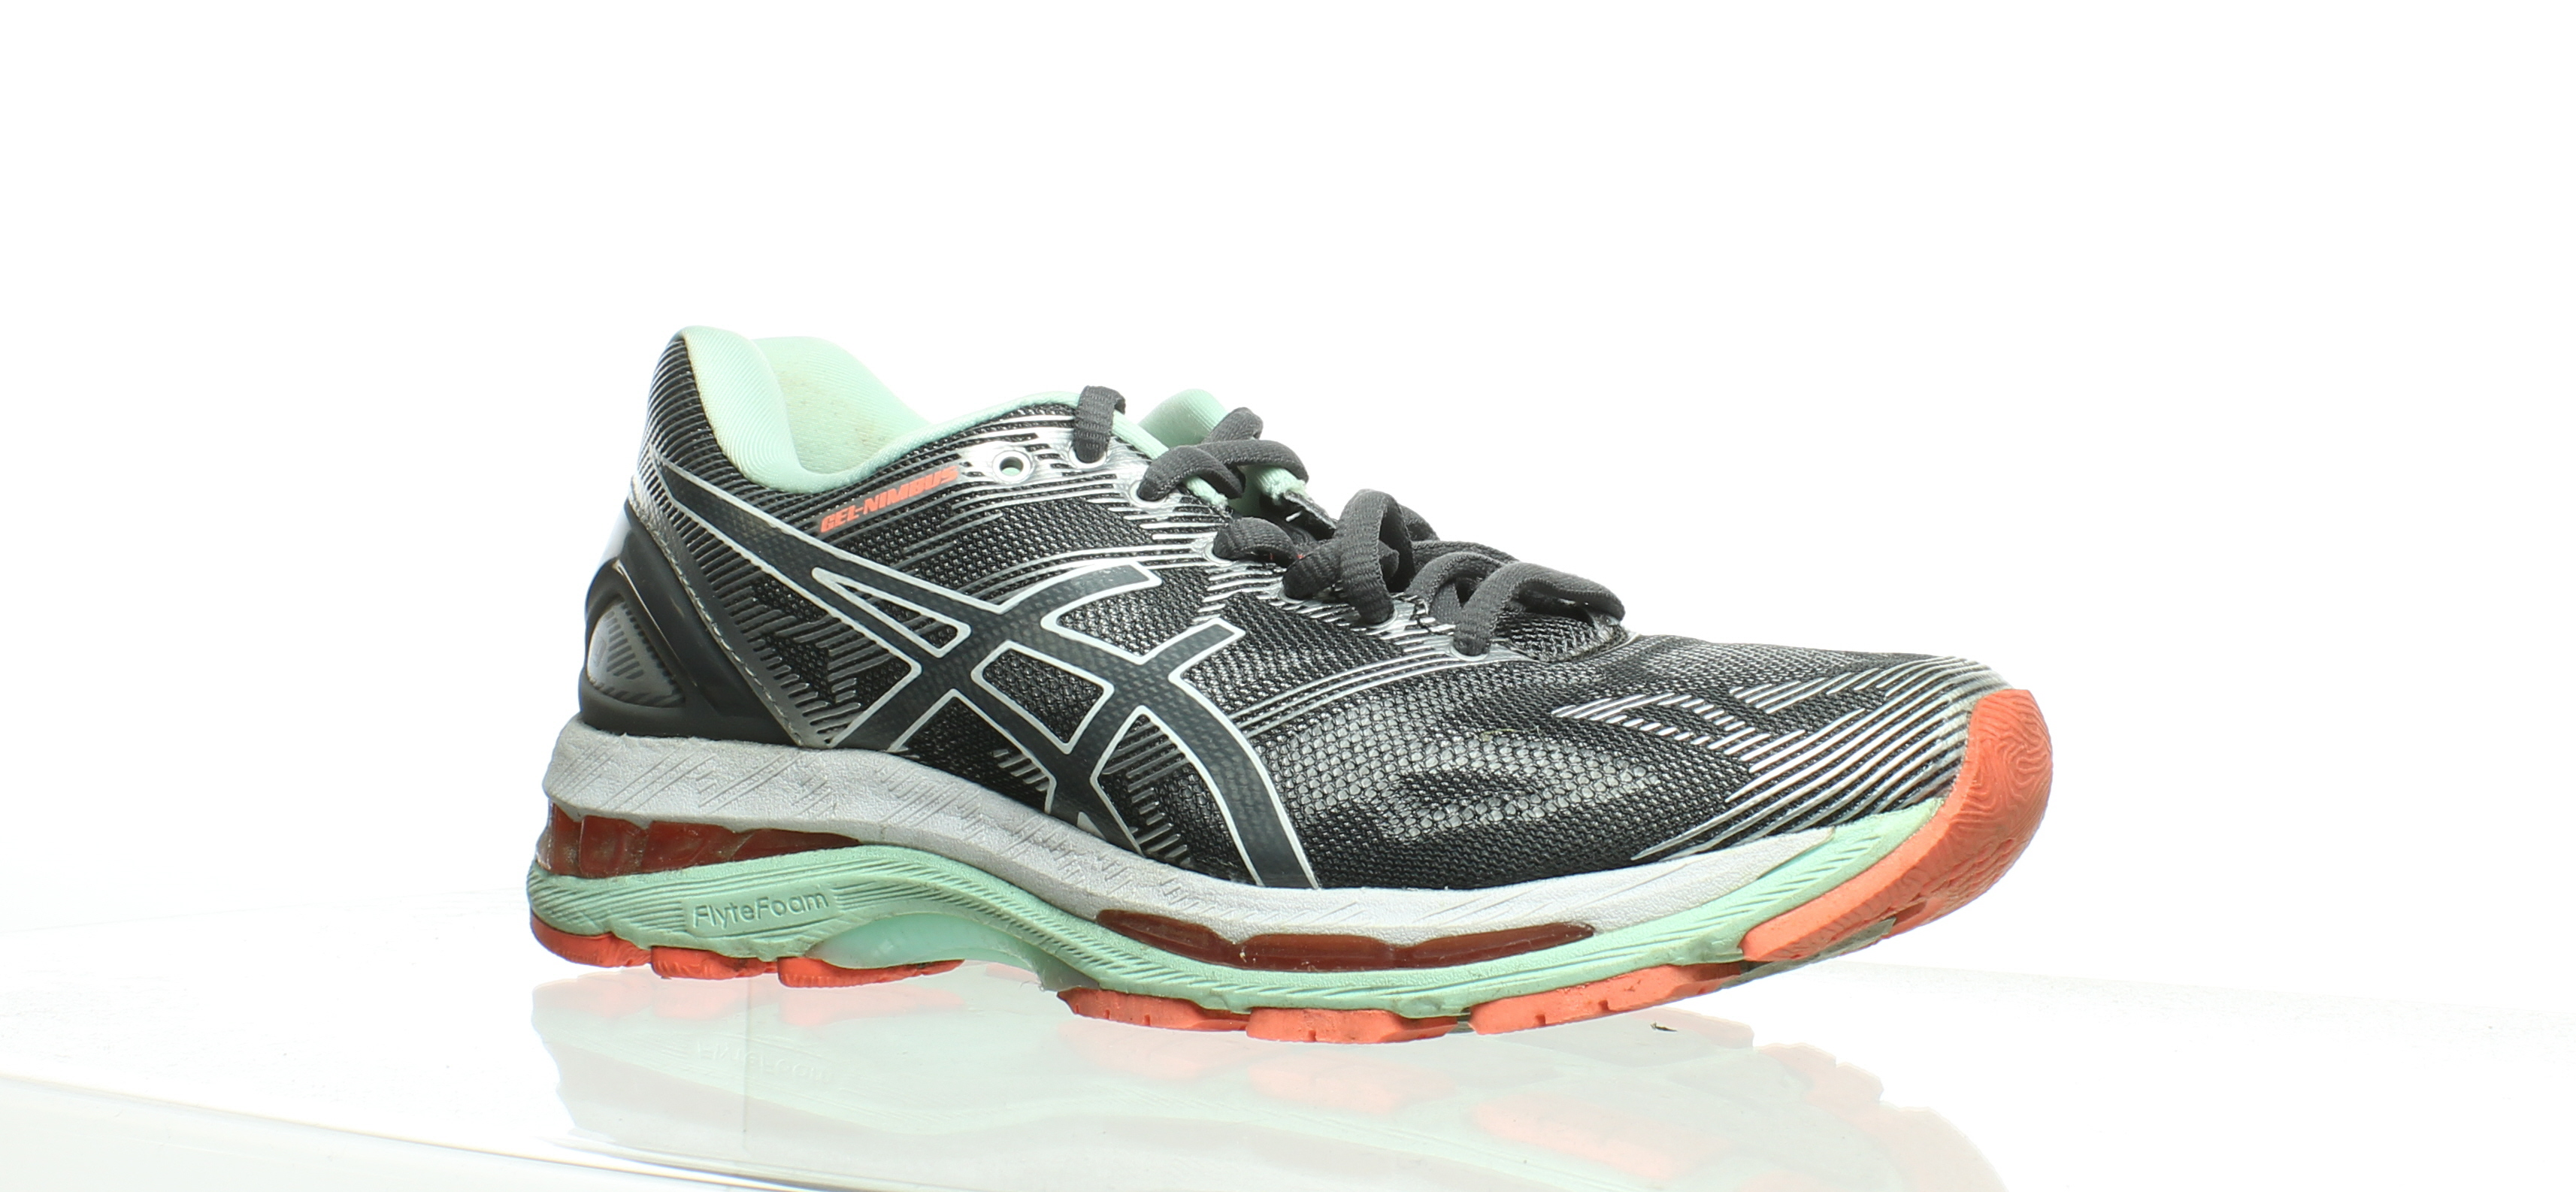 Asics About Womens Gray Shoes Size Running Details 8231617 19 Gel Nimbus qpSUzMV